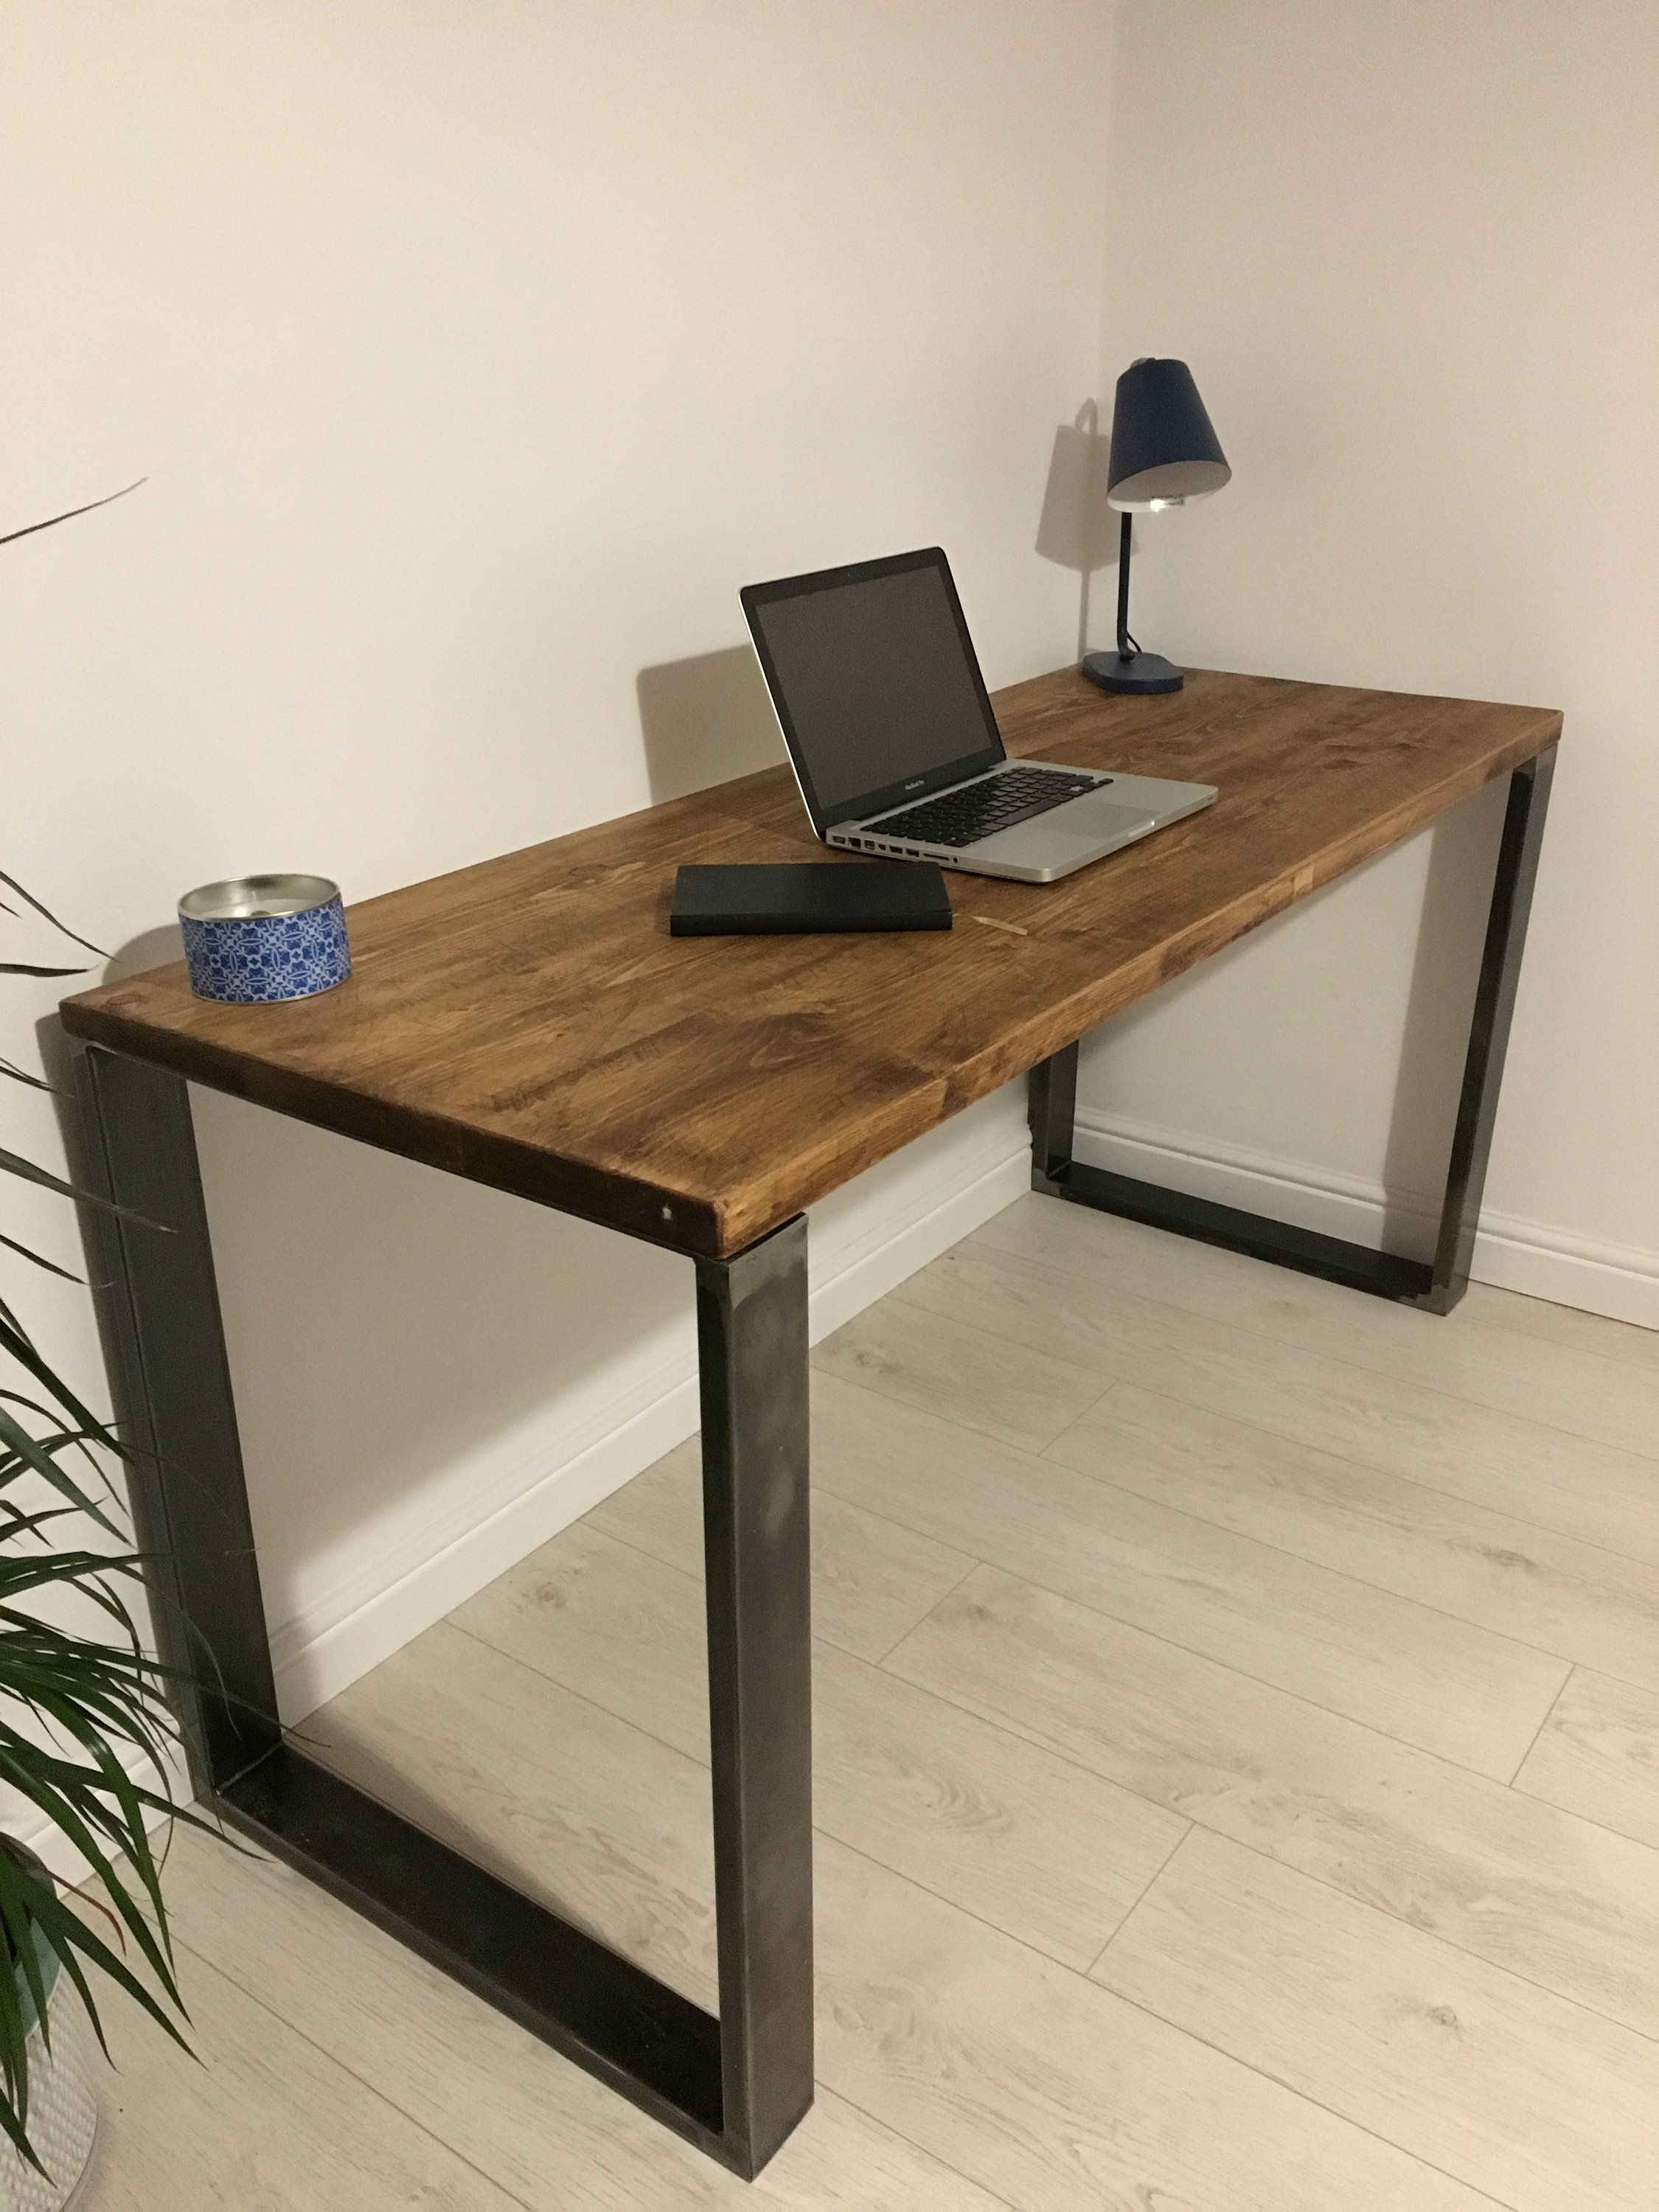 Rustic Wooden Desk Made From Reclaimed Scaffold Boards